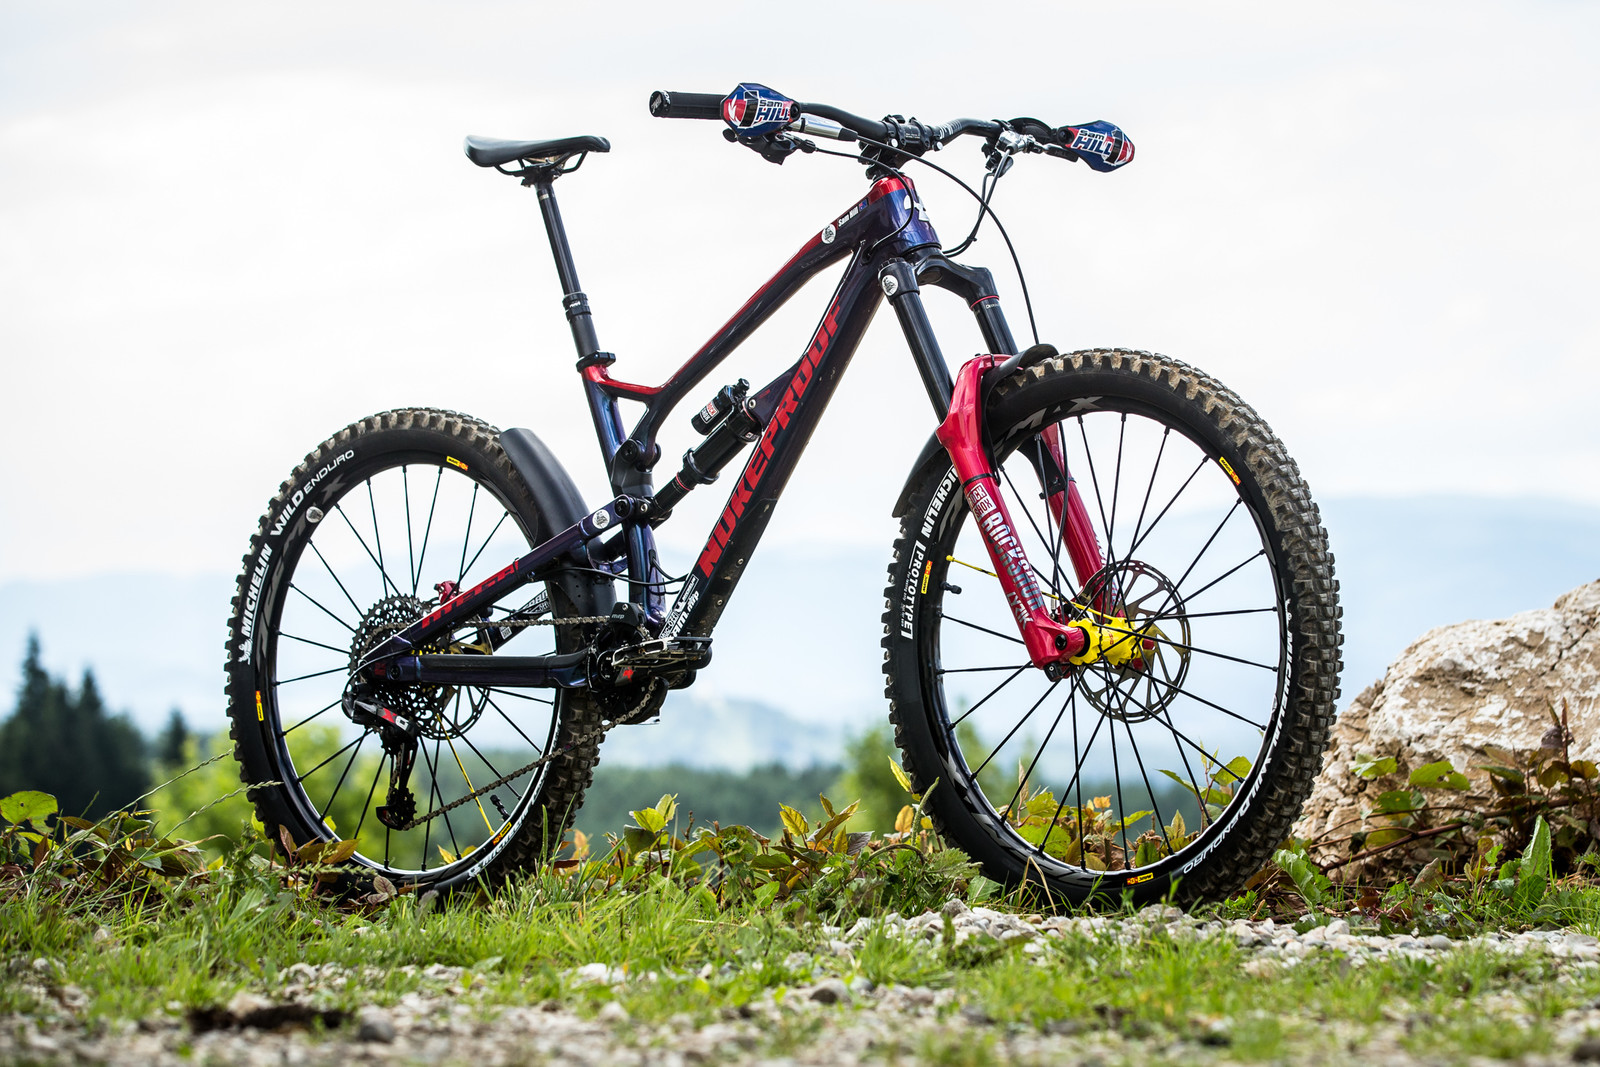 WINNING BIKE - Sam Hill's Nukeproof Mega 275 - WINNING BIKE - Sam Hill's Nukeproof Mega 275 - Mountain Biking Pictures - Vital MTB